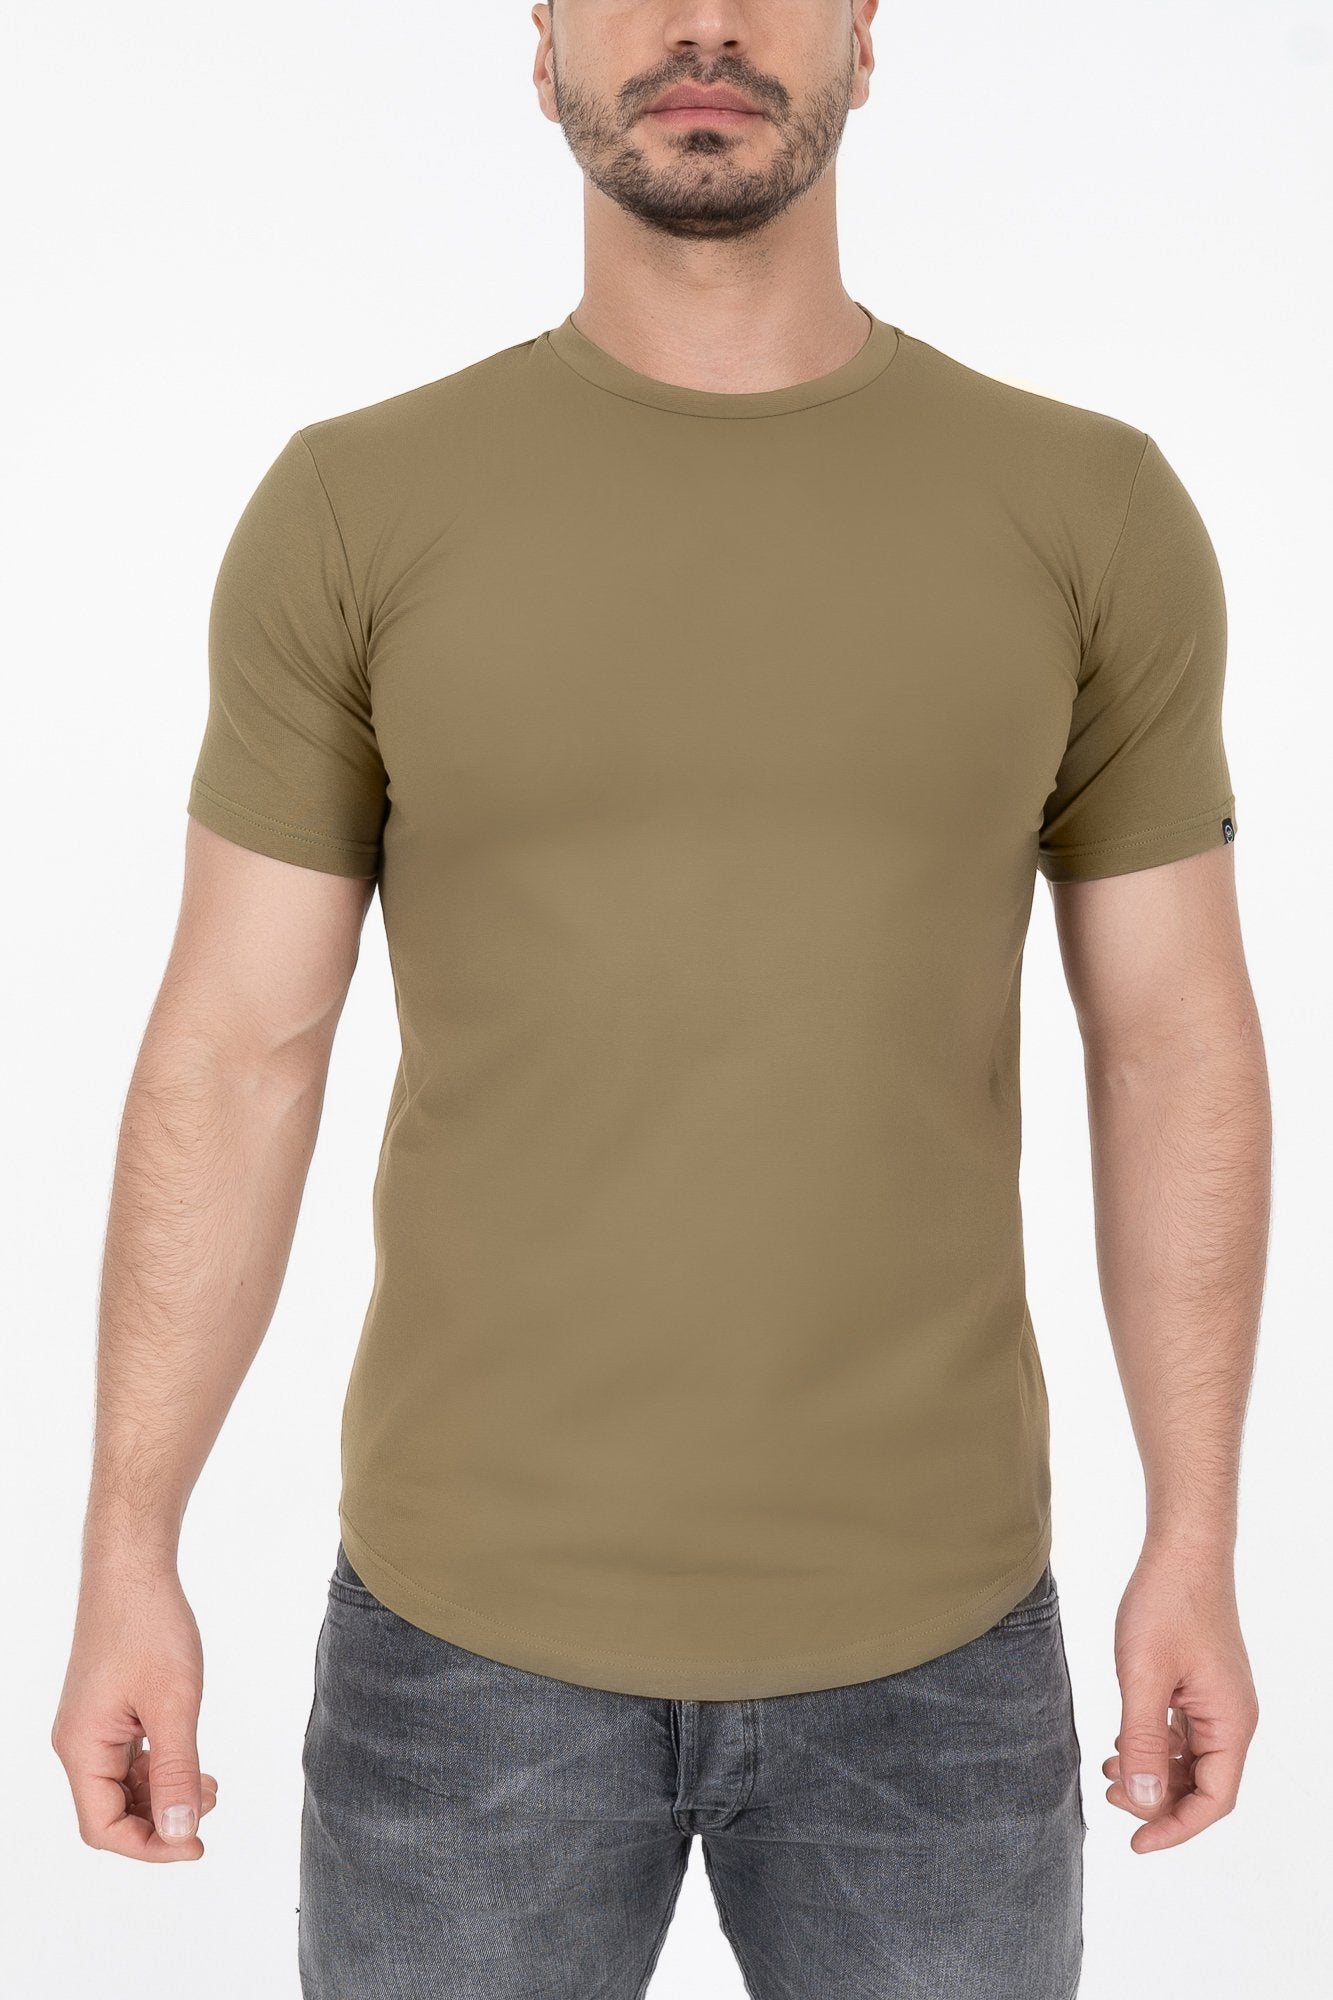 Established Tee - Green Military